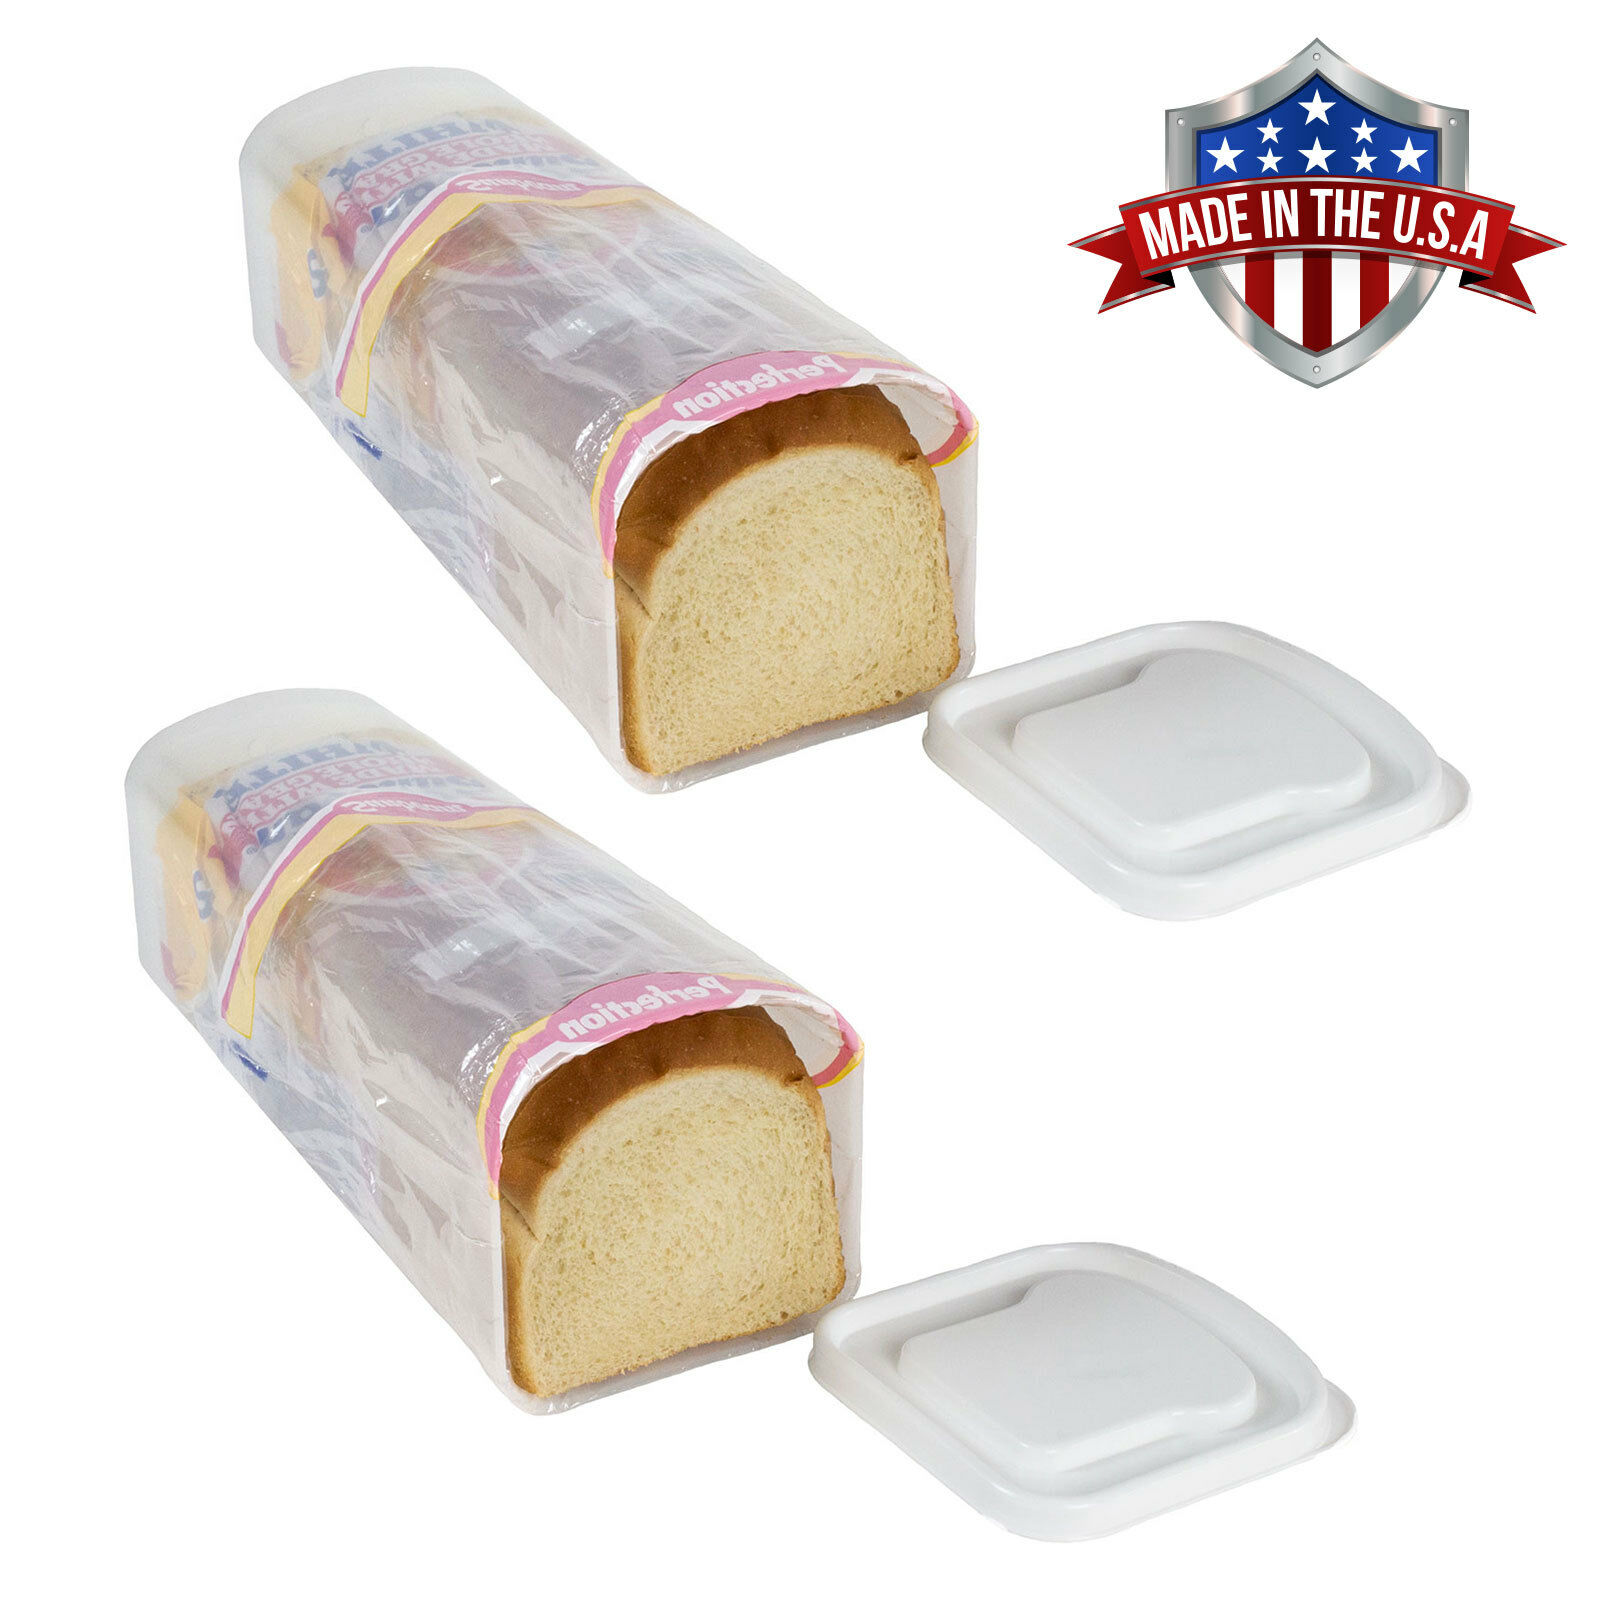 2 Pack Bread Keeper Holder Travel Sandwich Bread Box Crush-Proof Containers 2